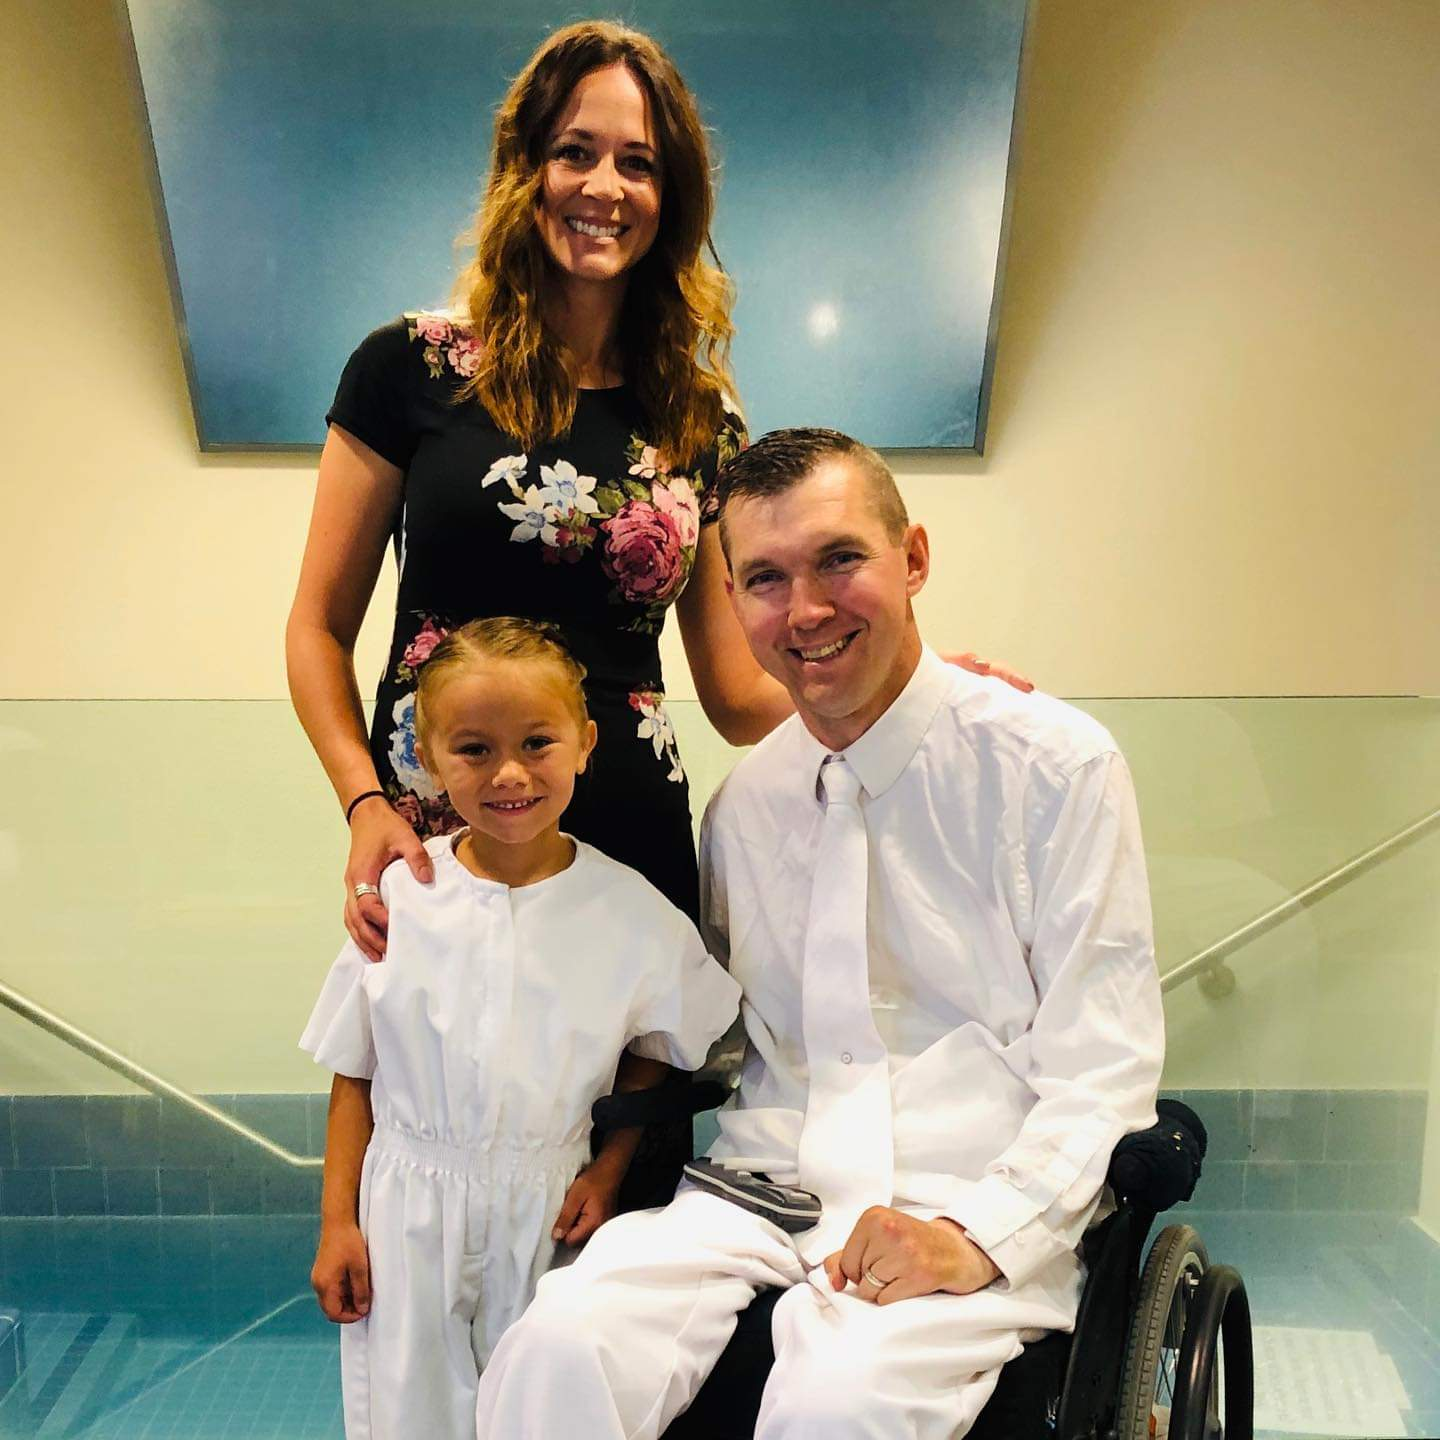 Jarom and Leslie Hlebasko pose with their daughter Miree at her baptism.